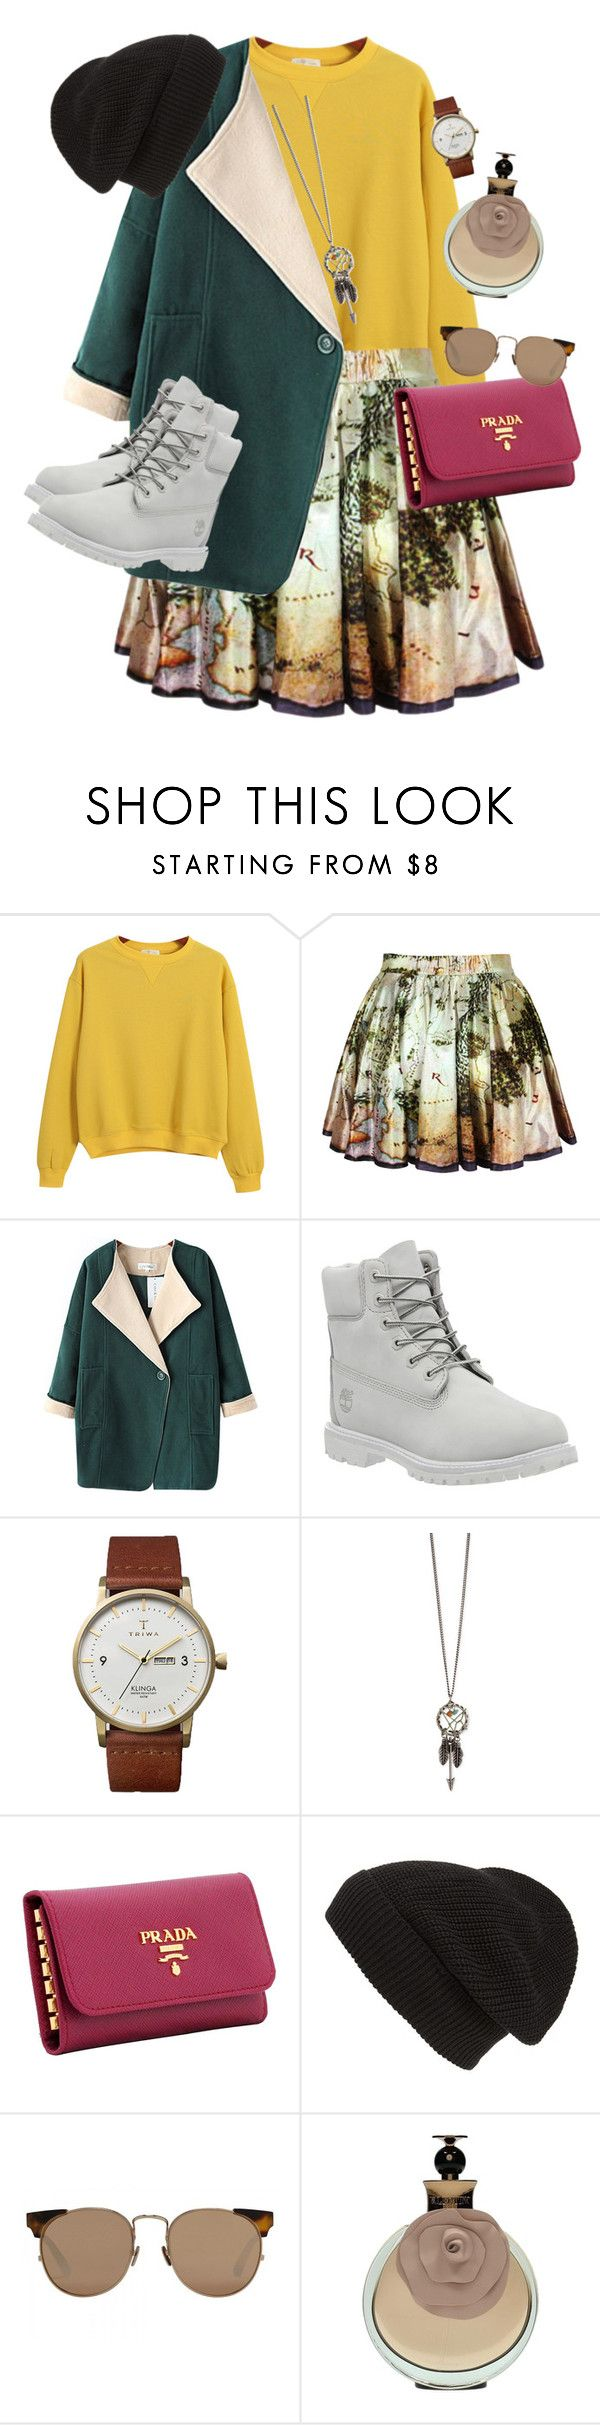 """See you soon -Coldplay"" by dorienooos ❤ liked on Polyvore featuring Chicnova Fashion, Timberland, Triwa, Prada, Phase 3 and Linda Farrow"